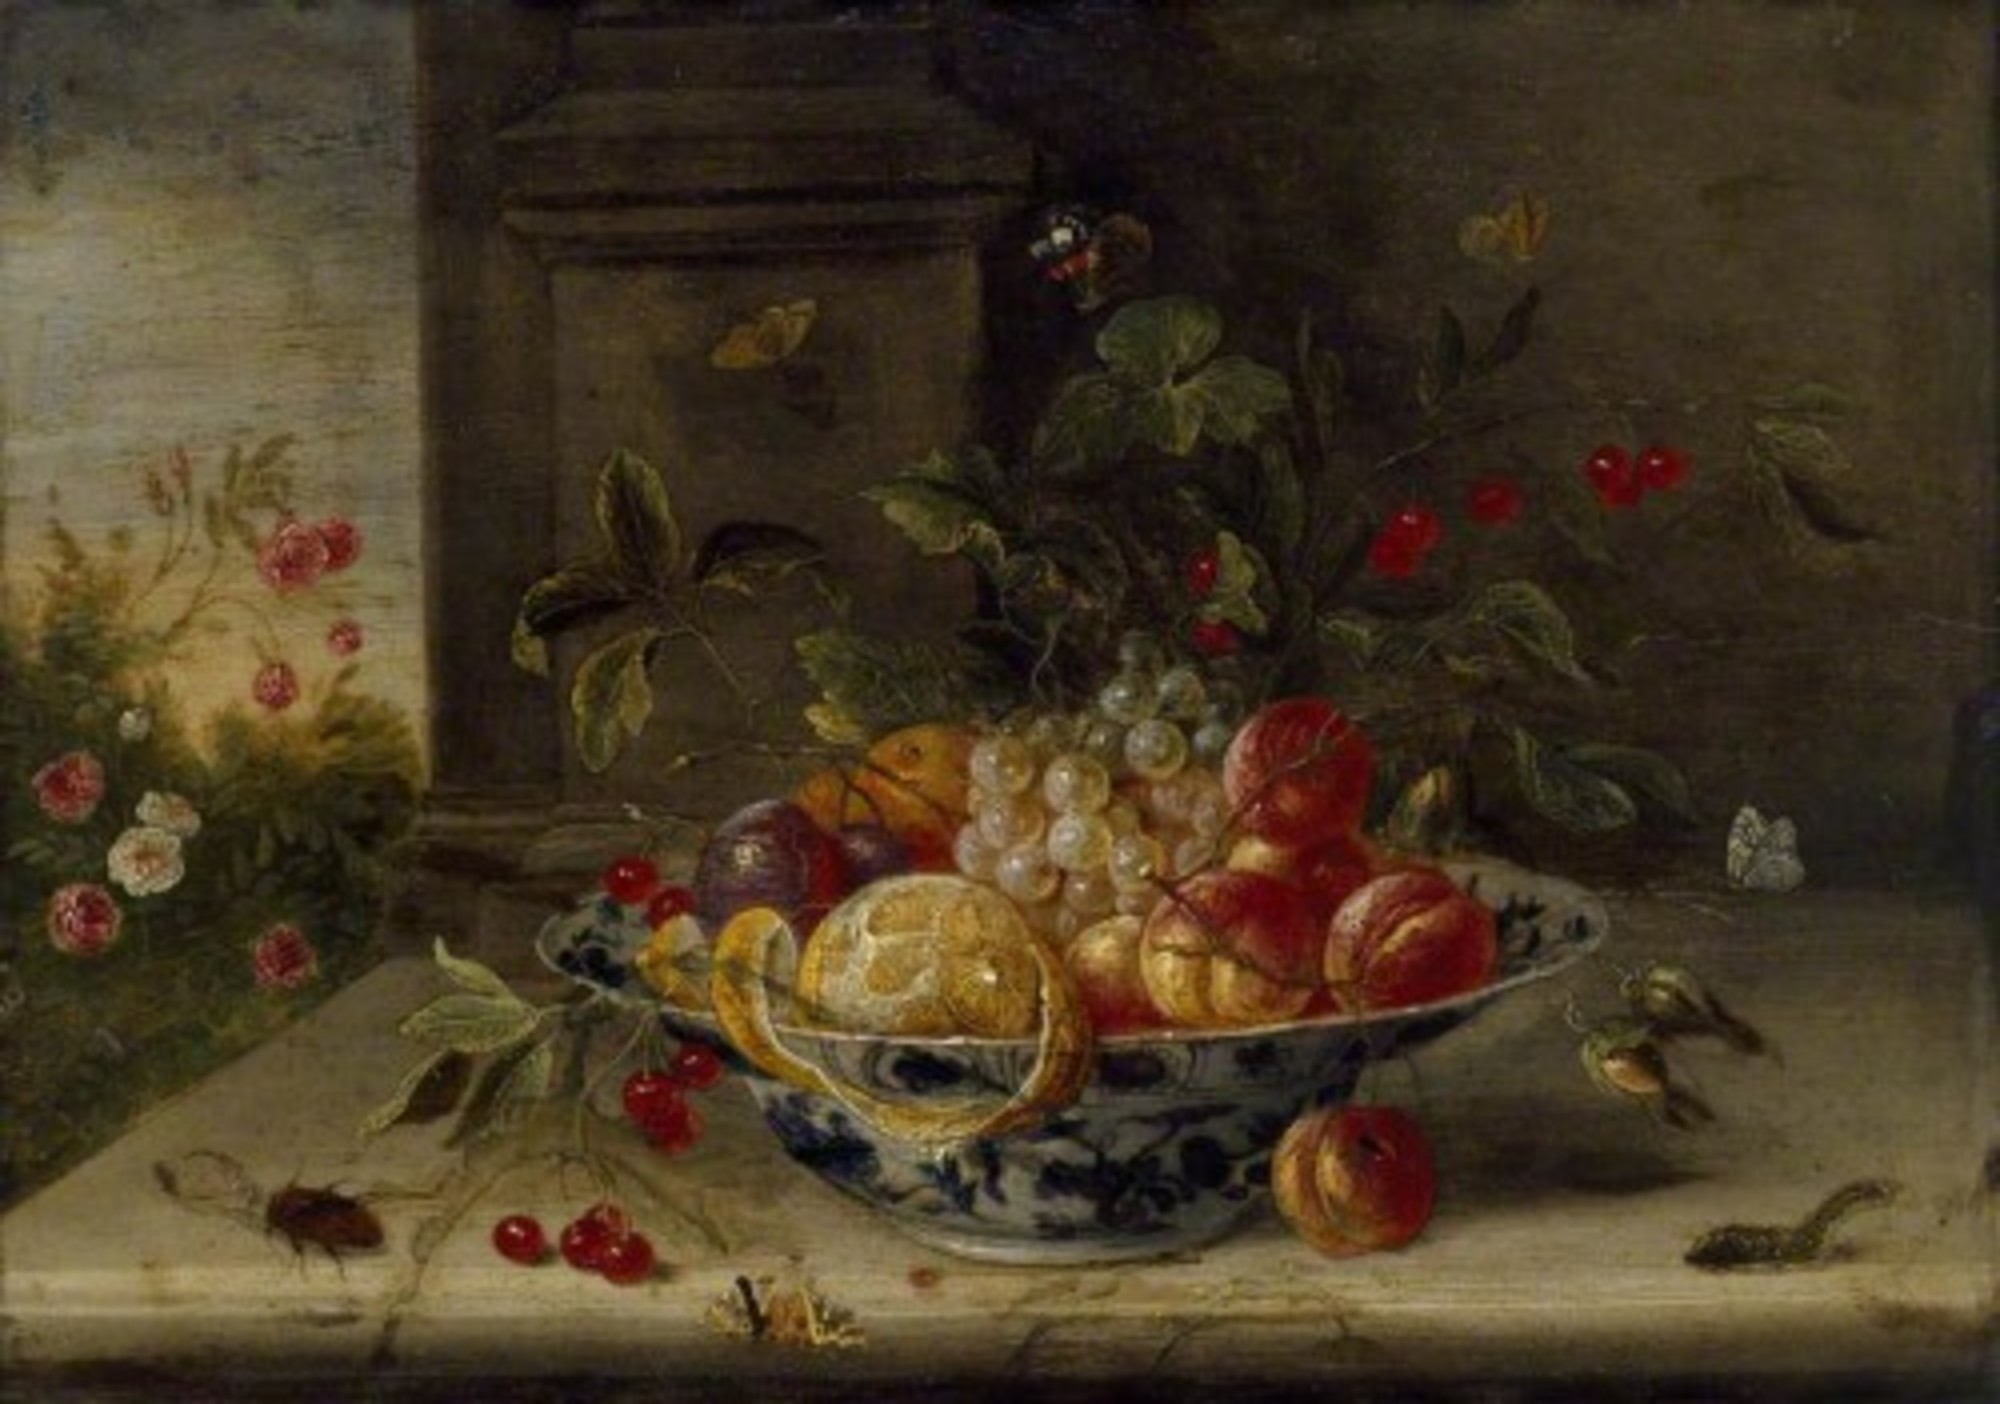 Jan-van-Kessel-the-Elder---Decorative-Still-Life-Composition-with-a-porcelain-Bowl-Fruit-and-Insects.jpg